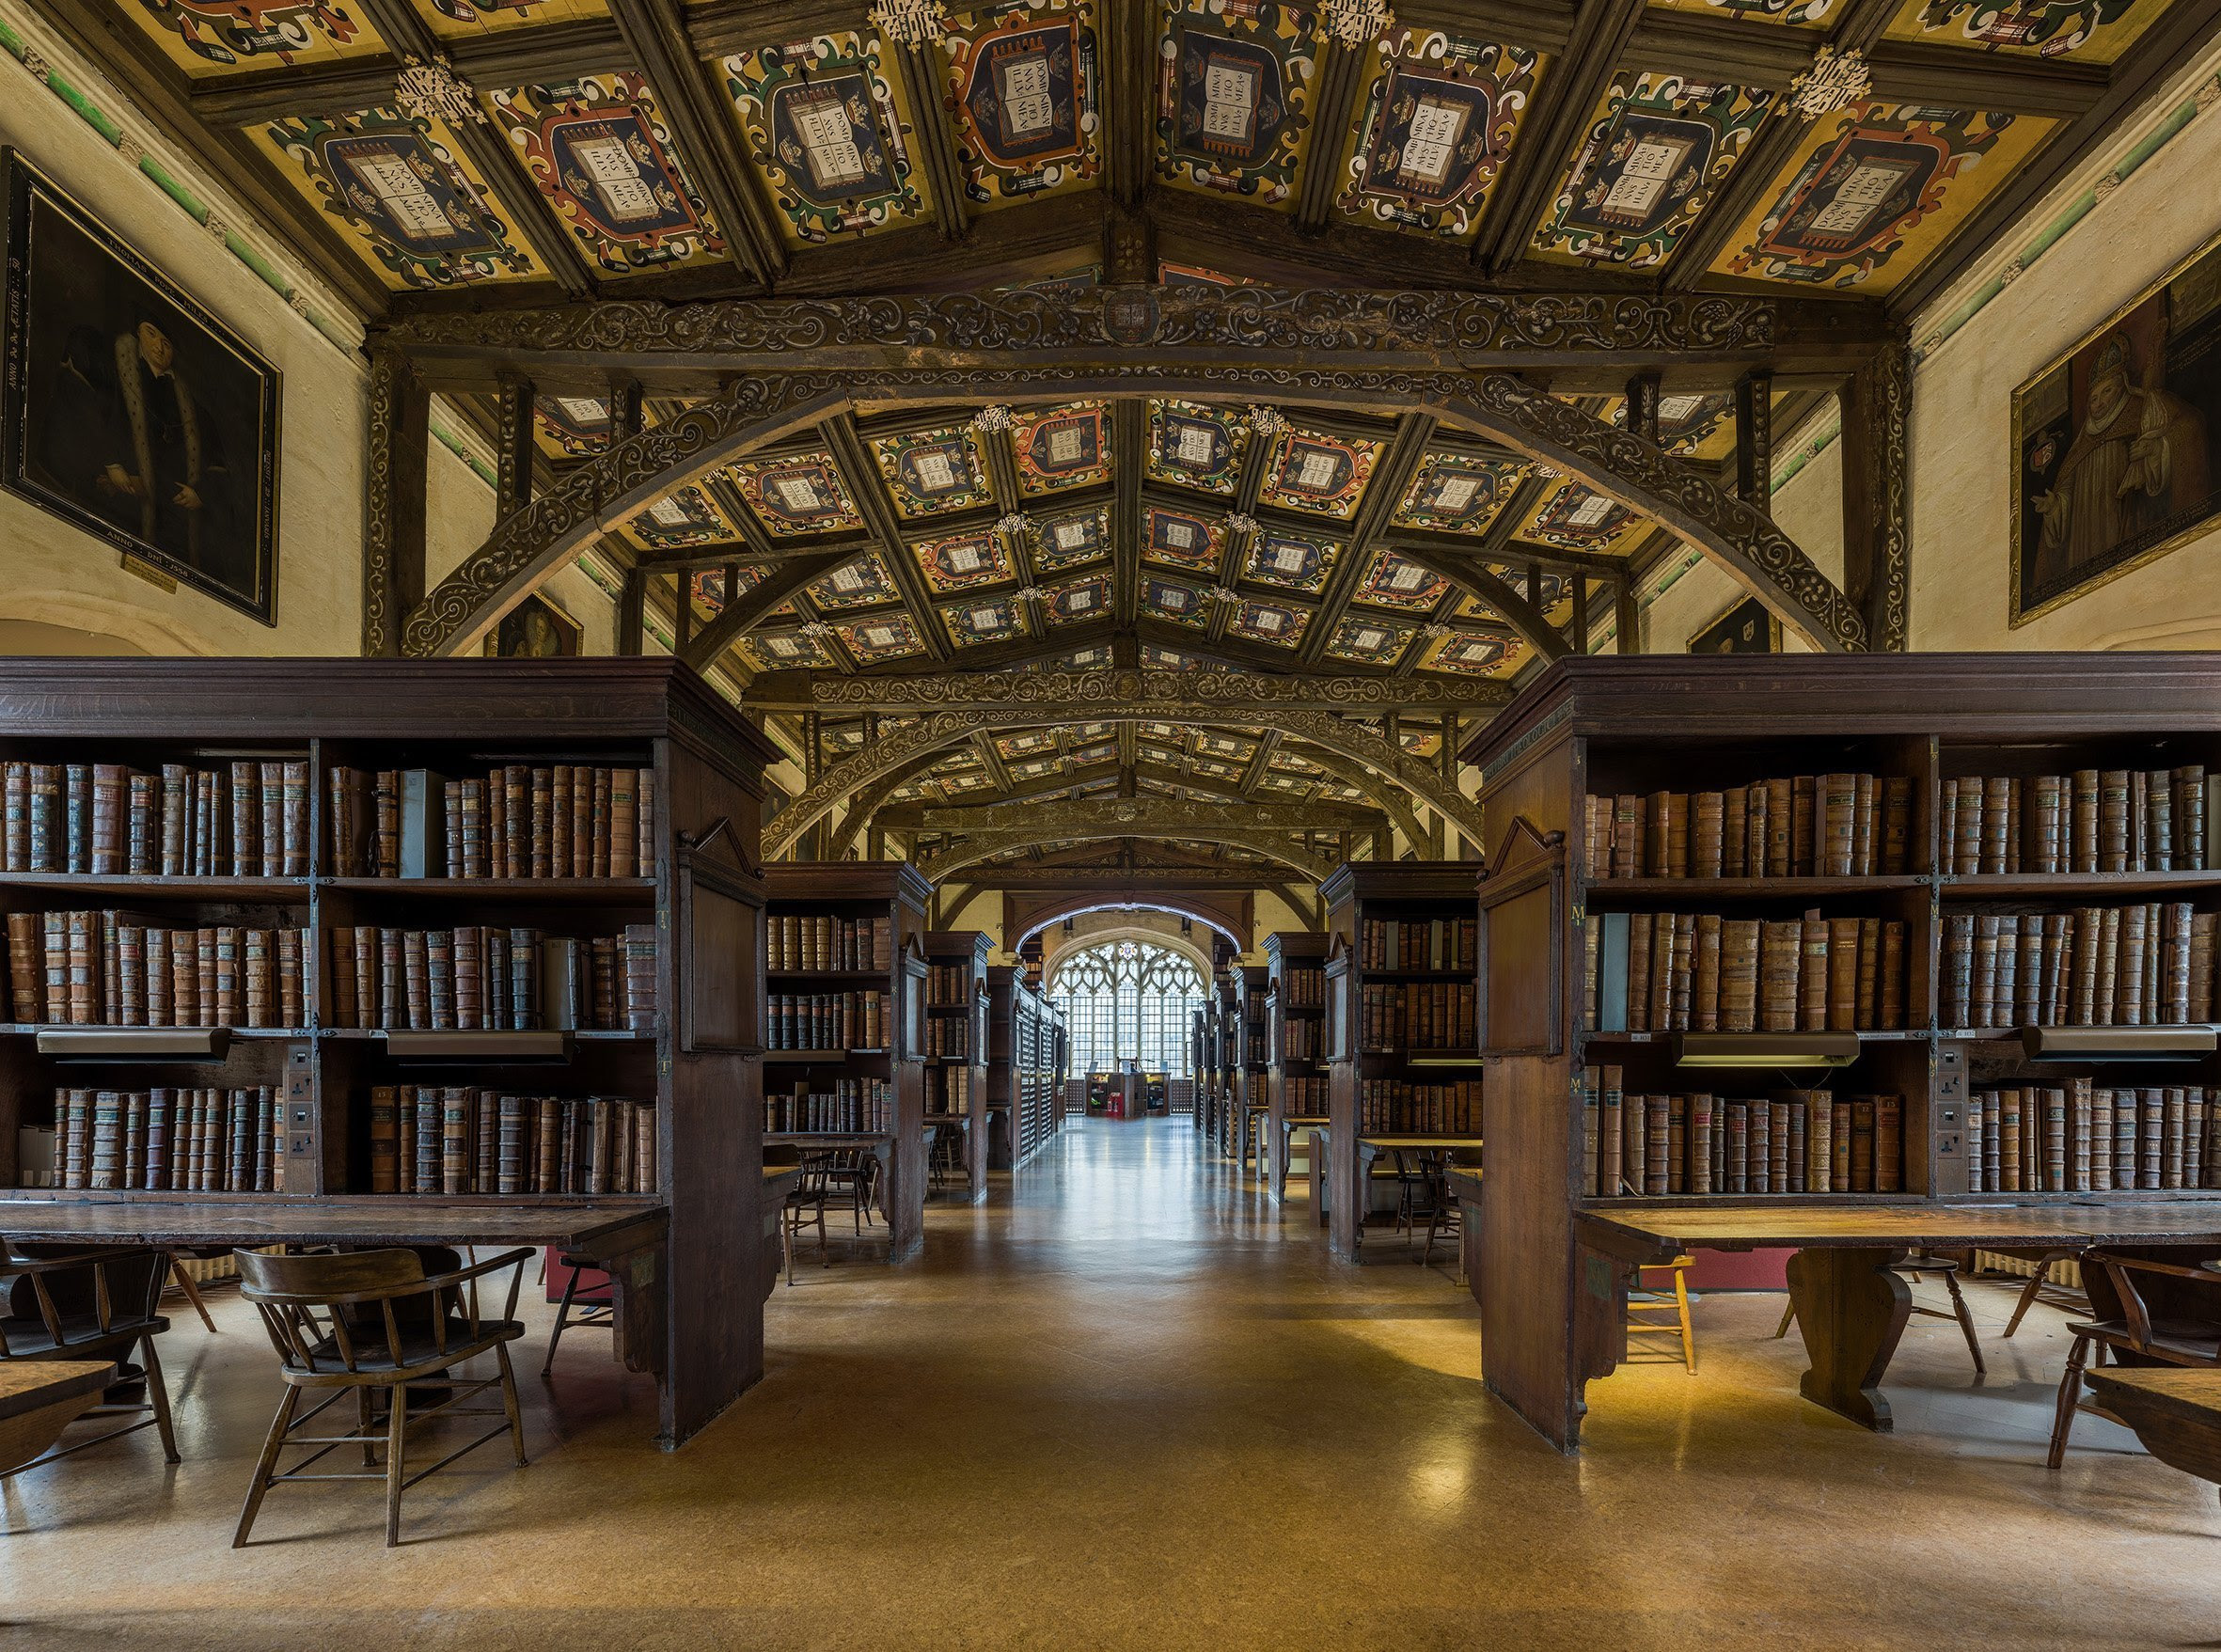 Duke_Humfreys_Library_Interior_6_Bodleian_Library_Oxford_UK_ _Diliff